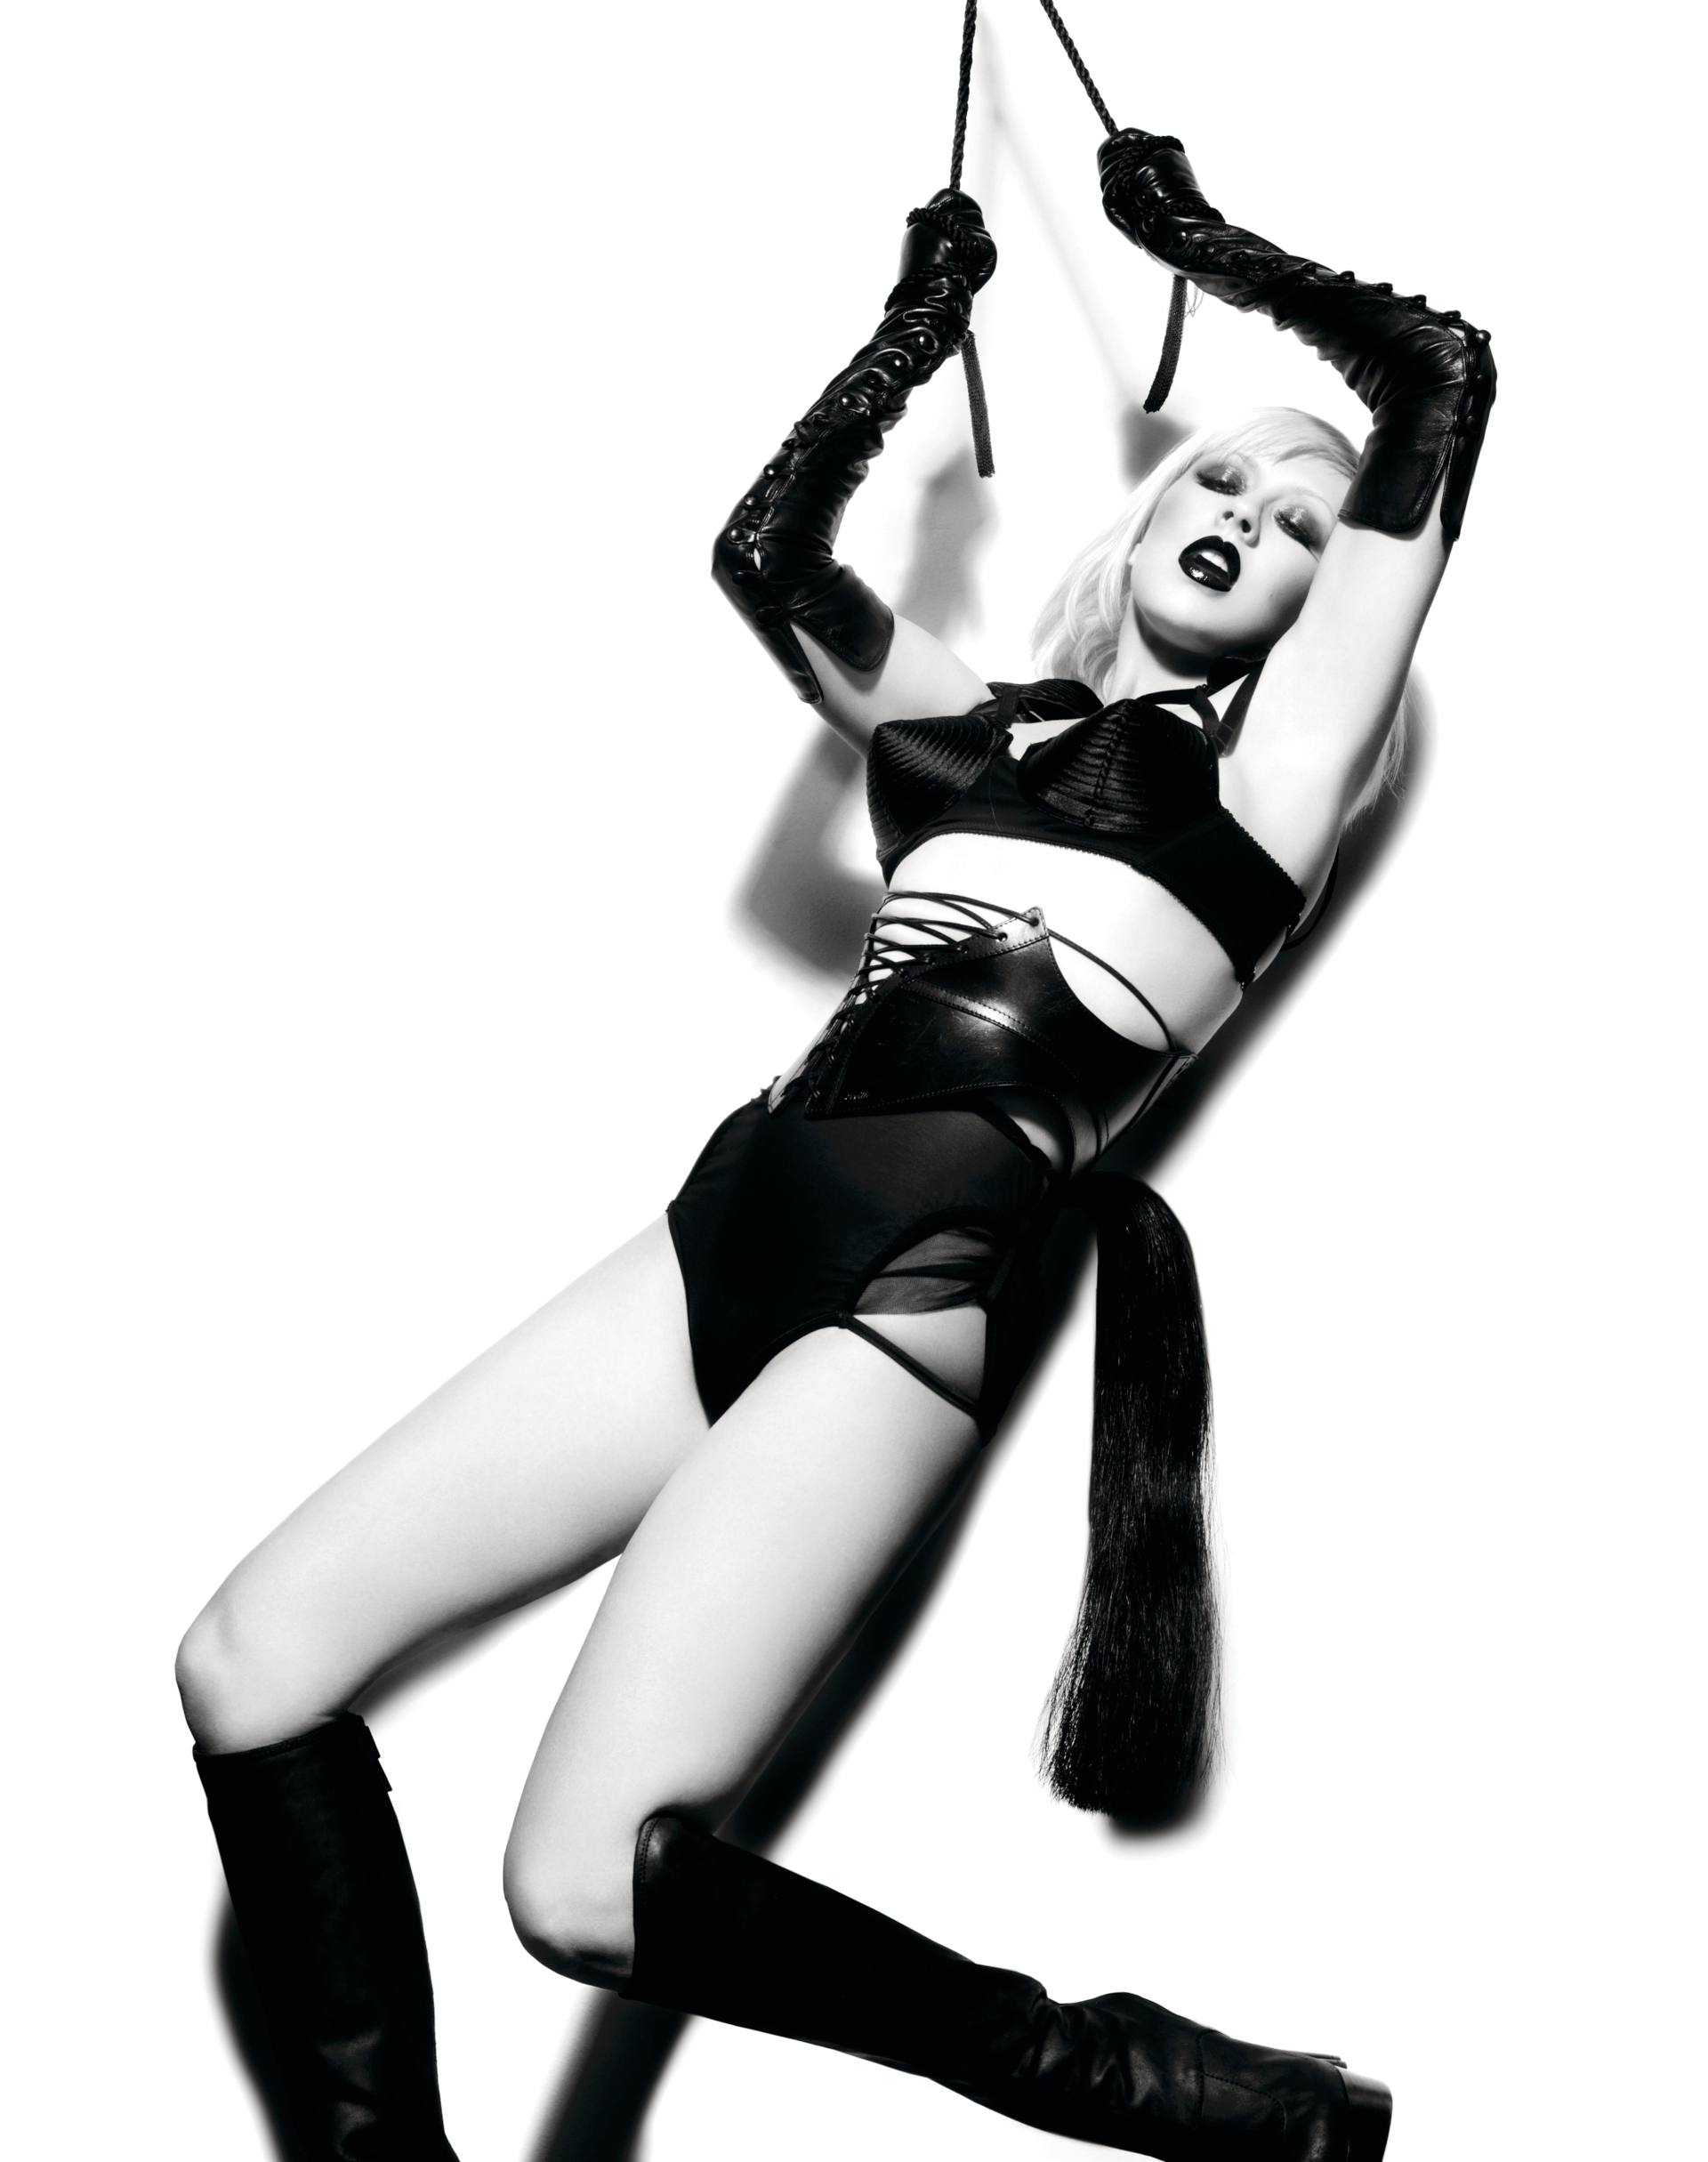 Christina Aguilera – Sexy Boobs In Naked Photoshoot Outtakes From Bionic Album Photoshoot 0019